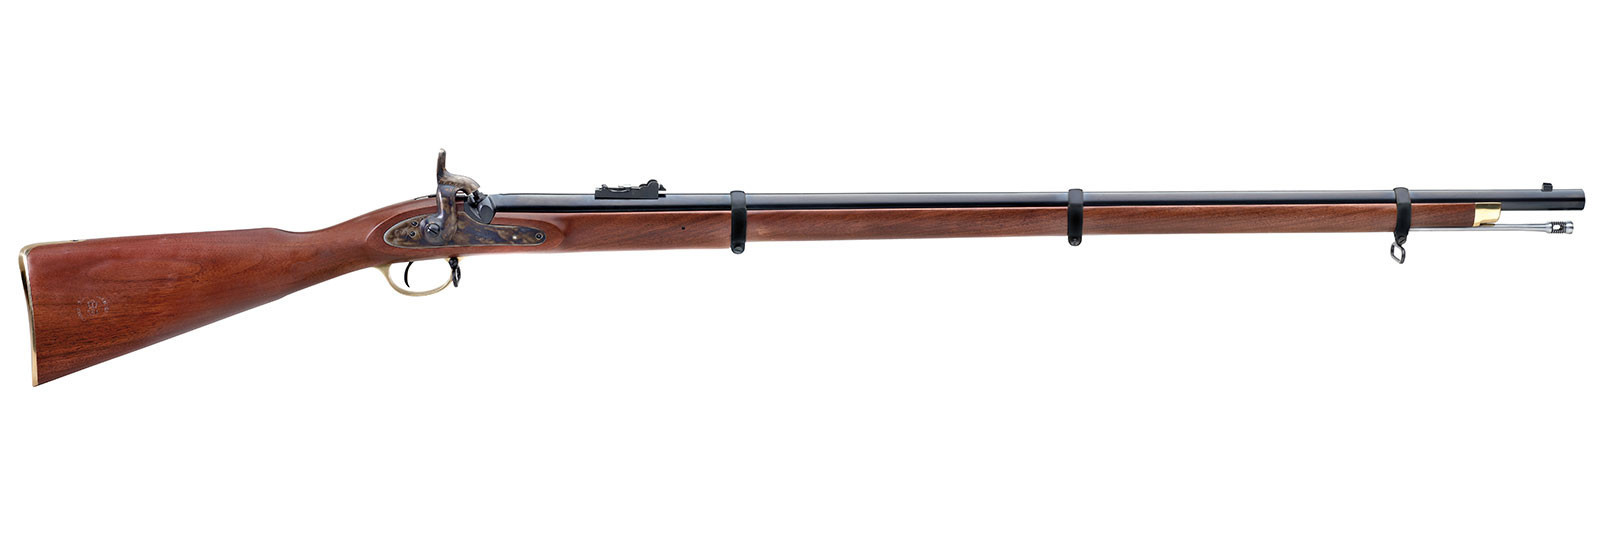 Enfield 3 band P1853 Rifle